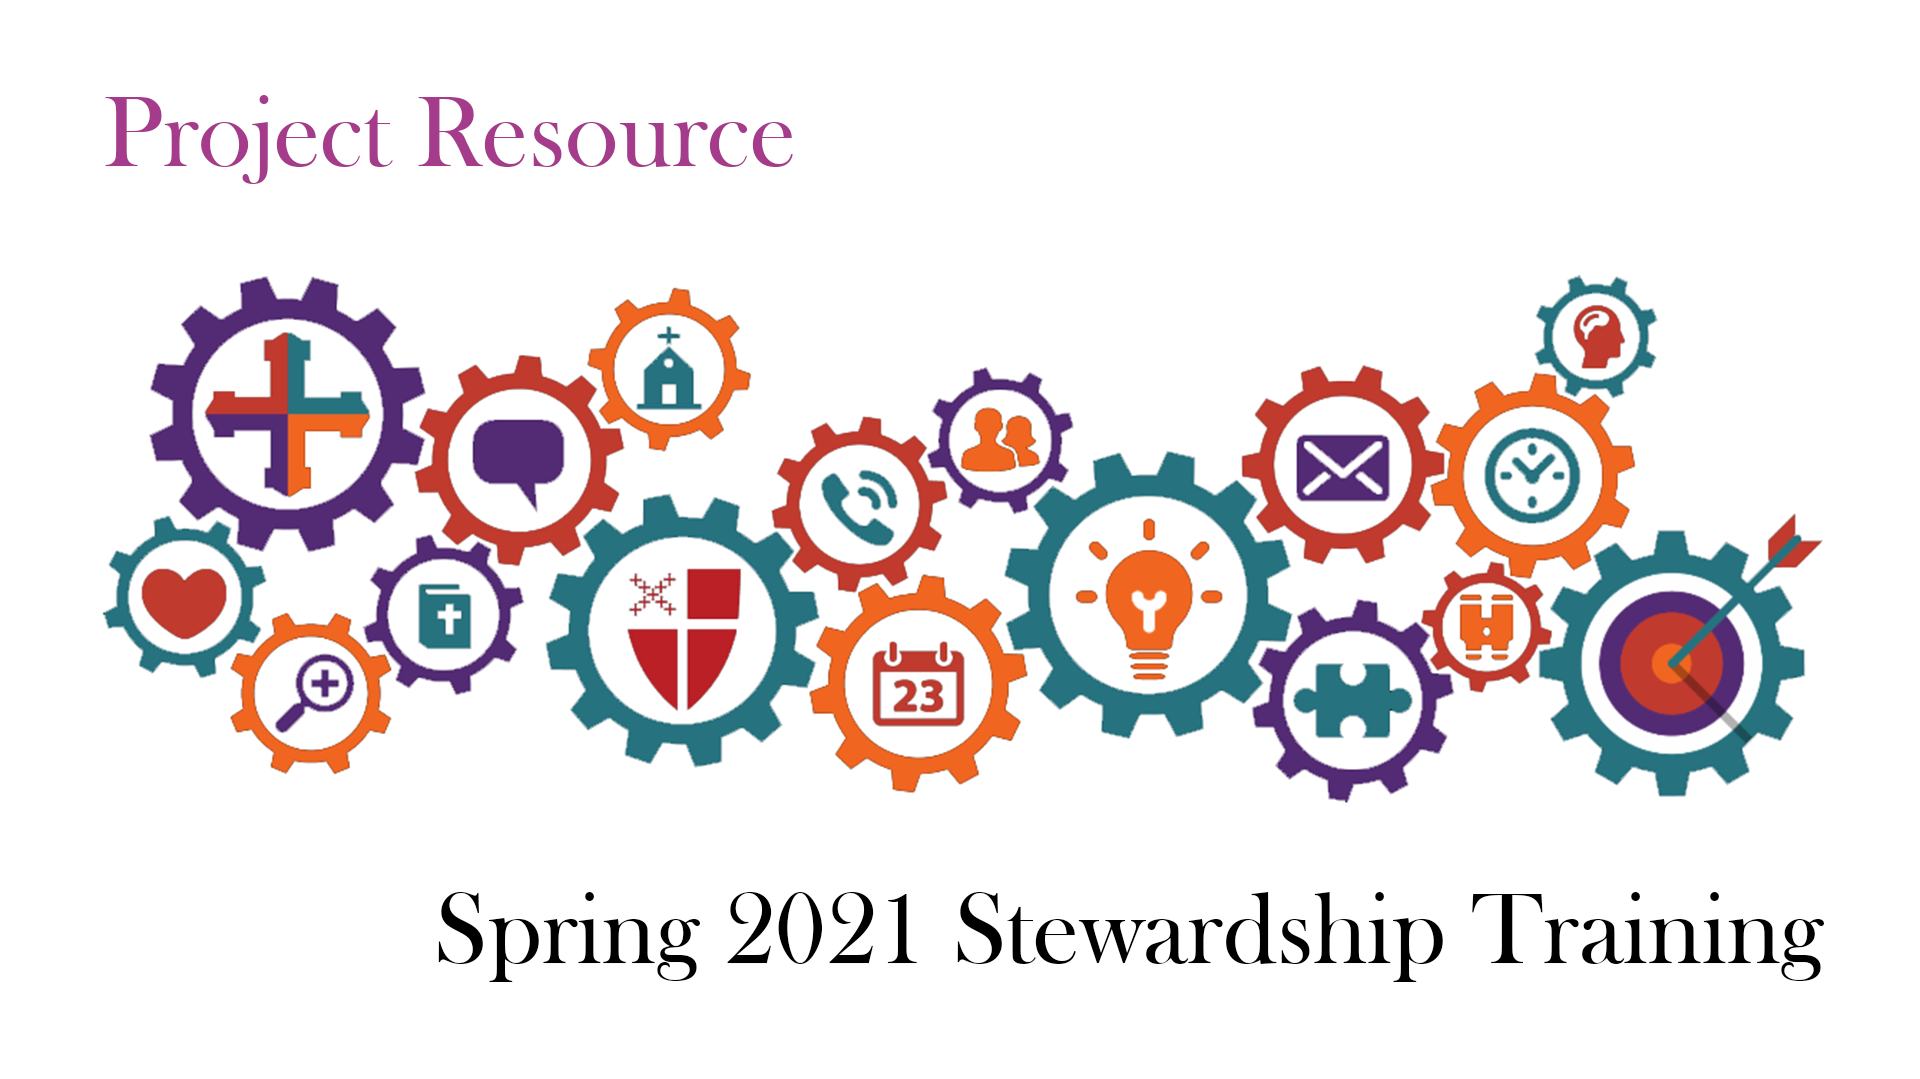 Project Resource Offers Spring 2021 Stewardship Training